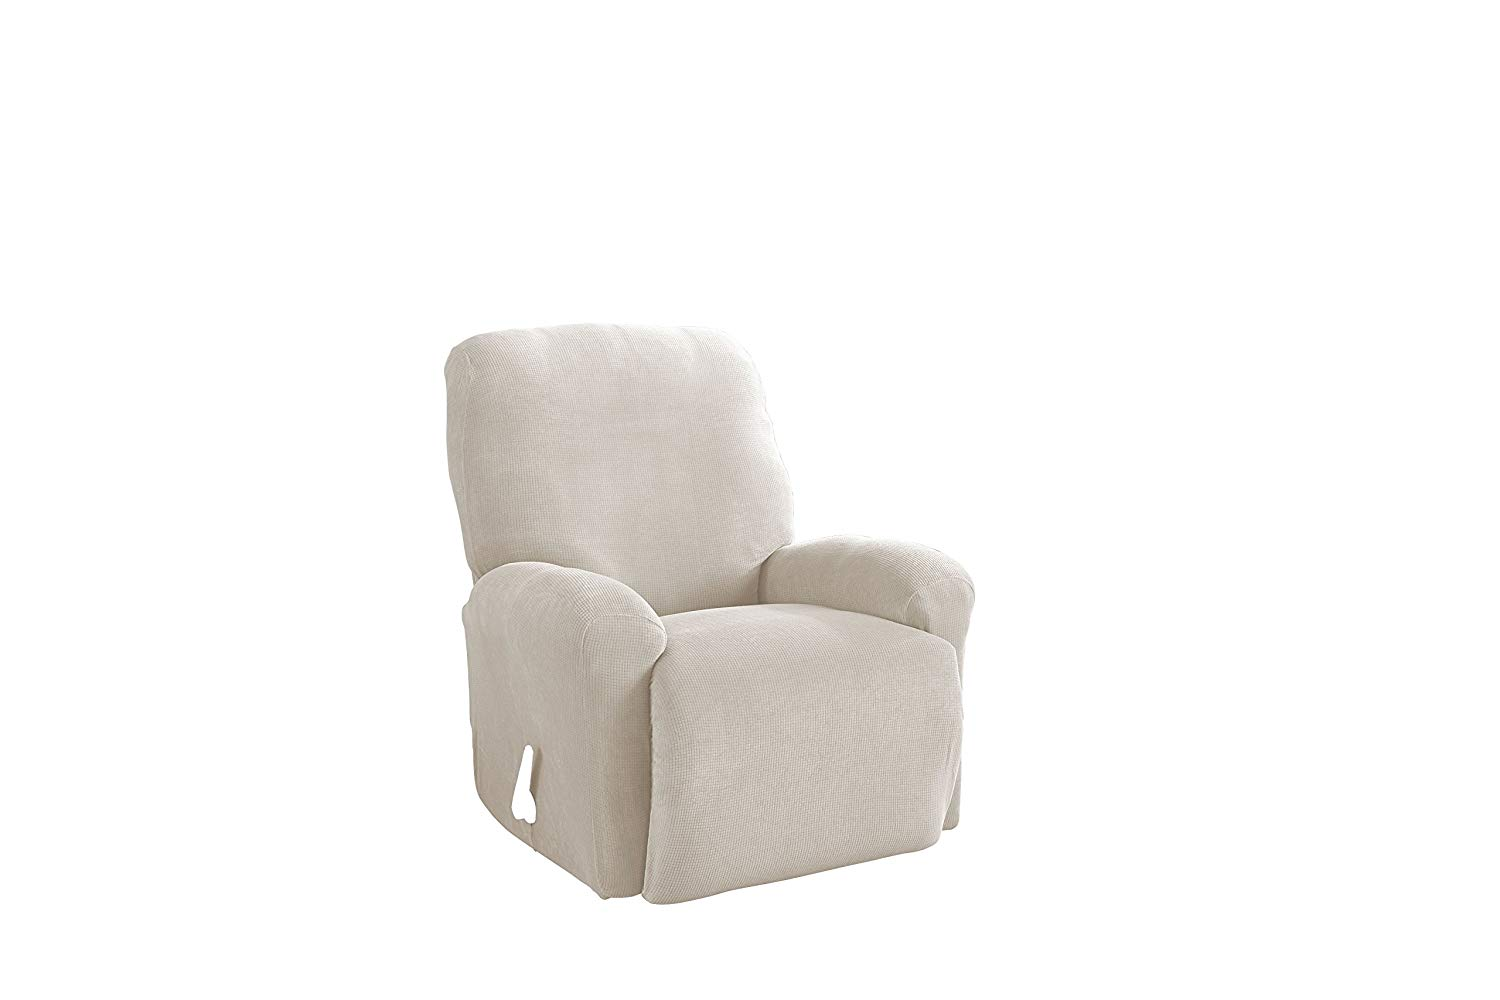 recliner chair covers grey art deco chairs top 10 best in 2018 reviews pro reivew chun yi 1 piece stretch spandex slip